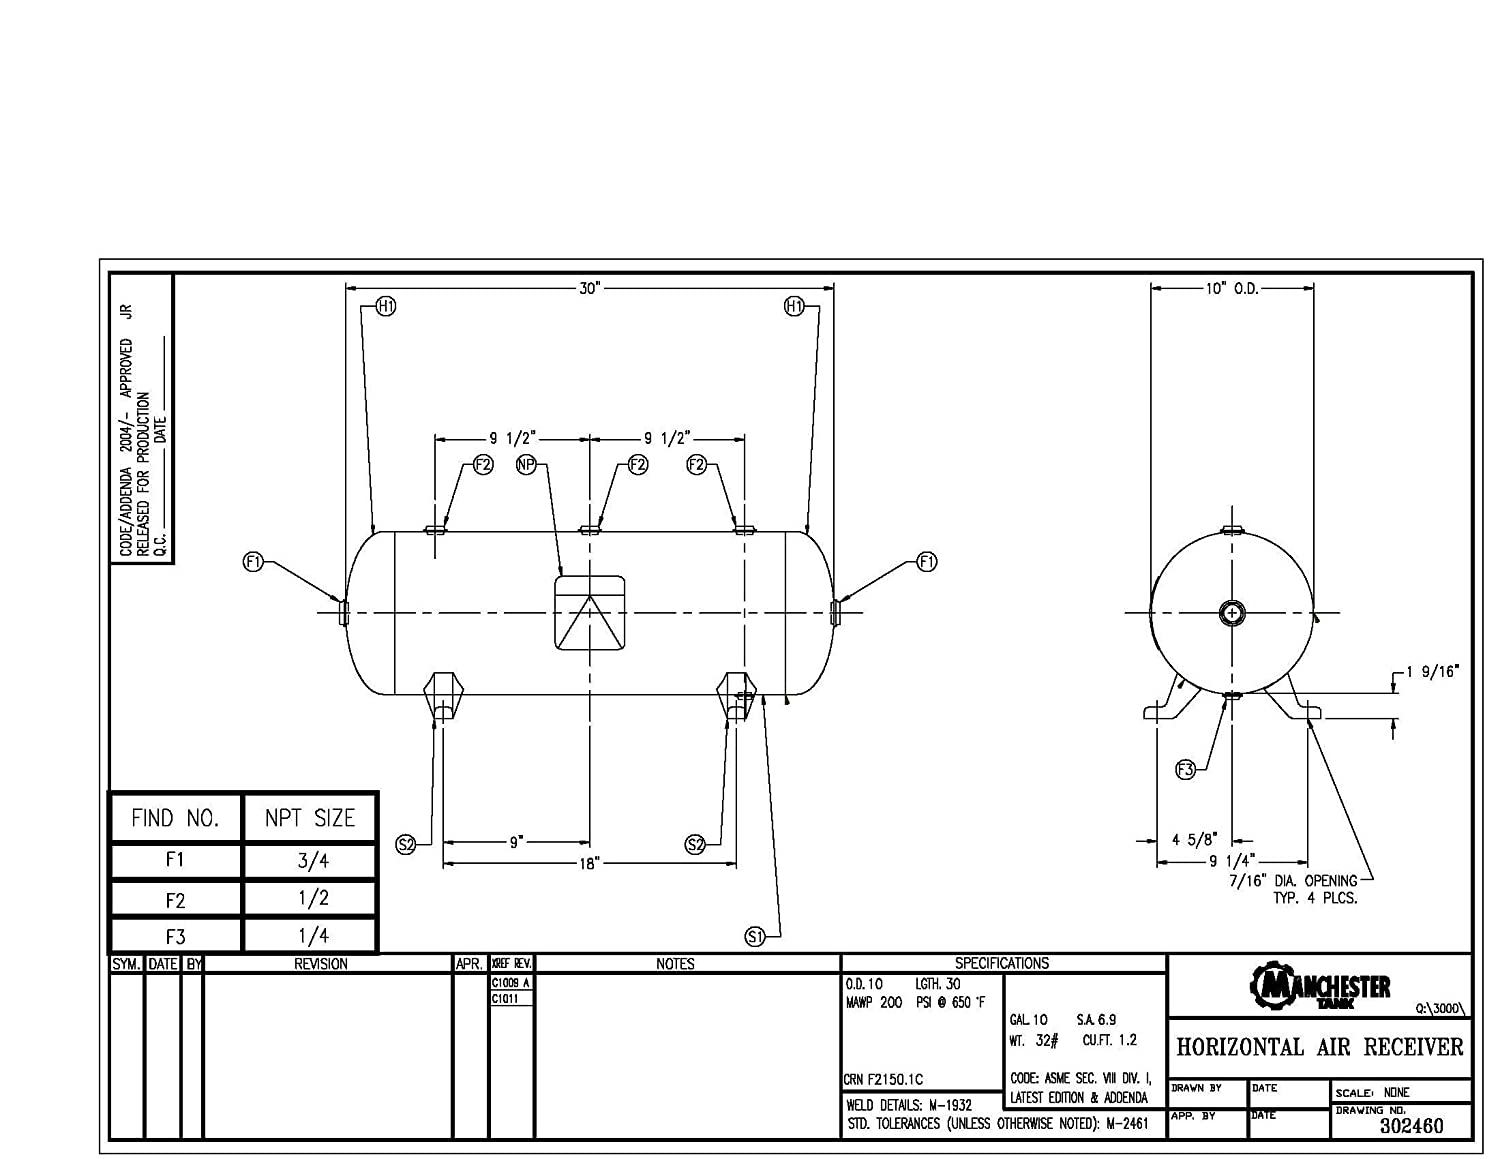 Manchester Tank 302460 Horizontal Air Receiver 10 Gallons 200 Schematic Psi Legs Only Compressor Accessories Industrial Scientific